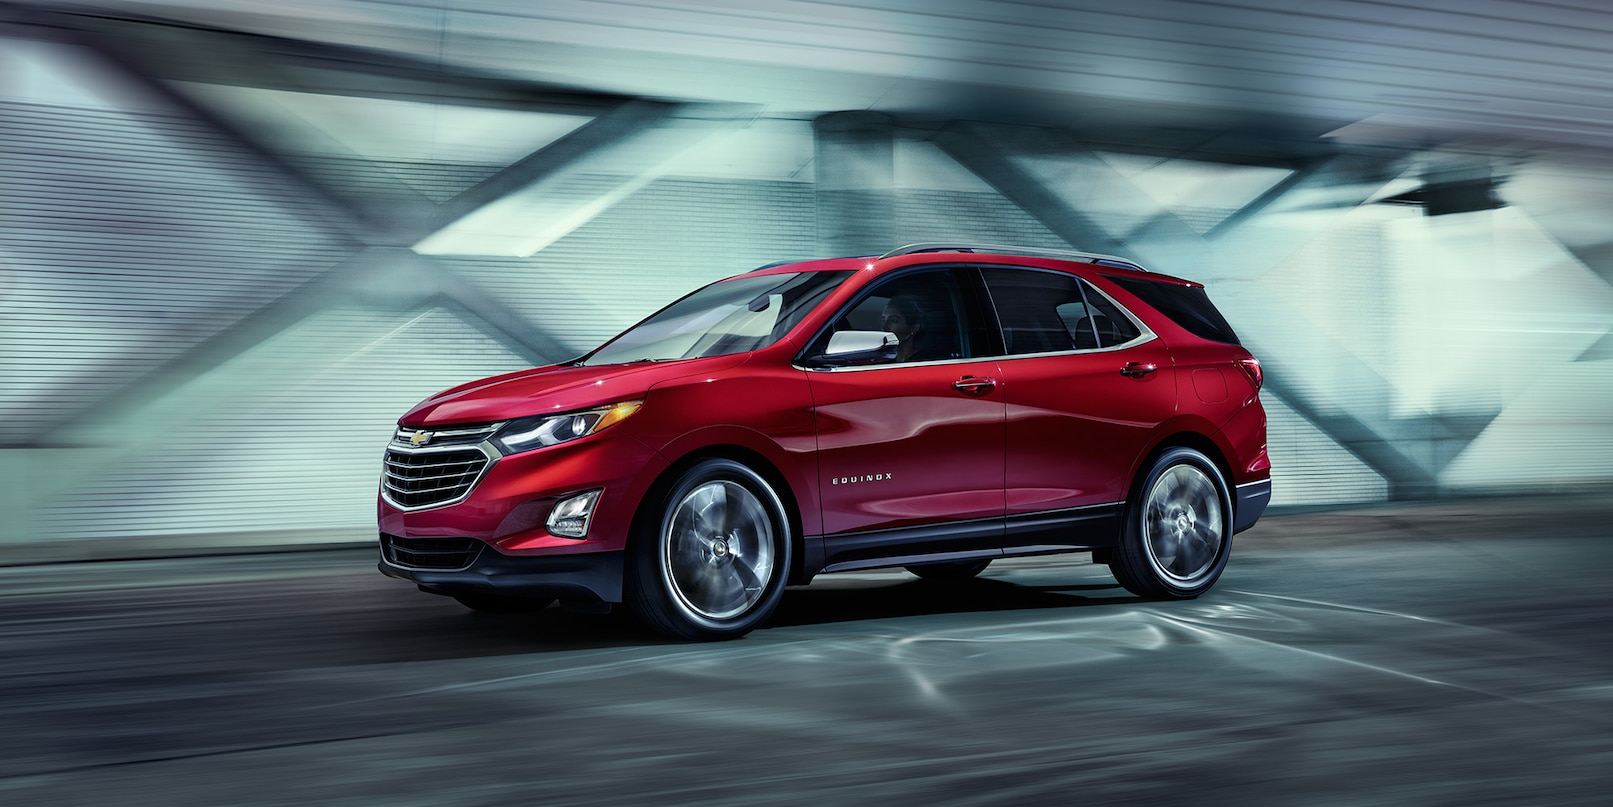 2019 Chevrolet Equinox for Sale in Jackson, MN